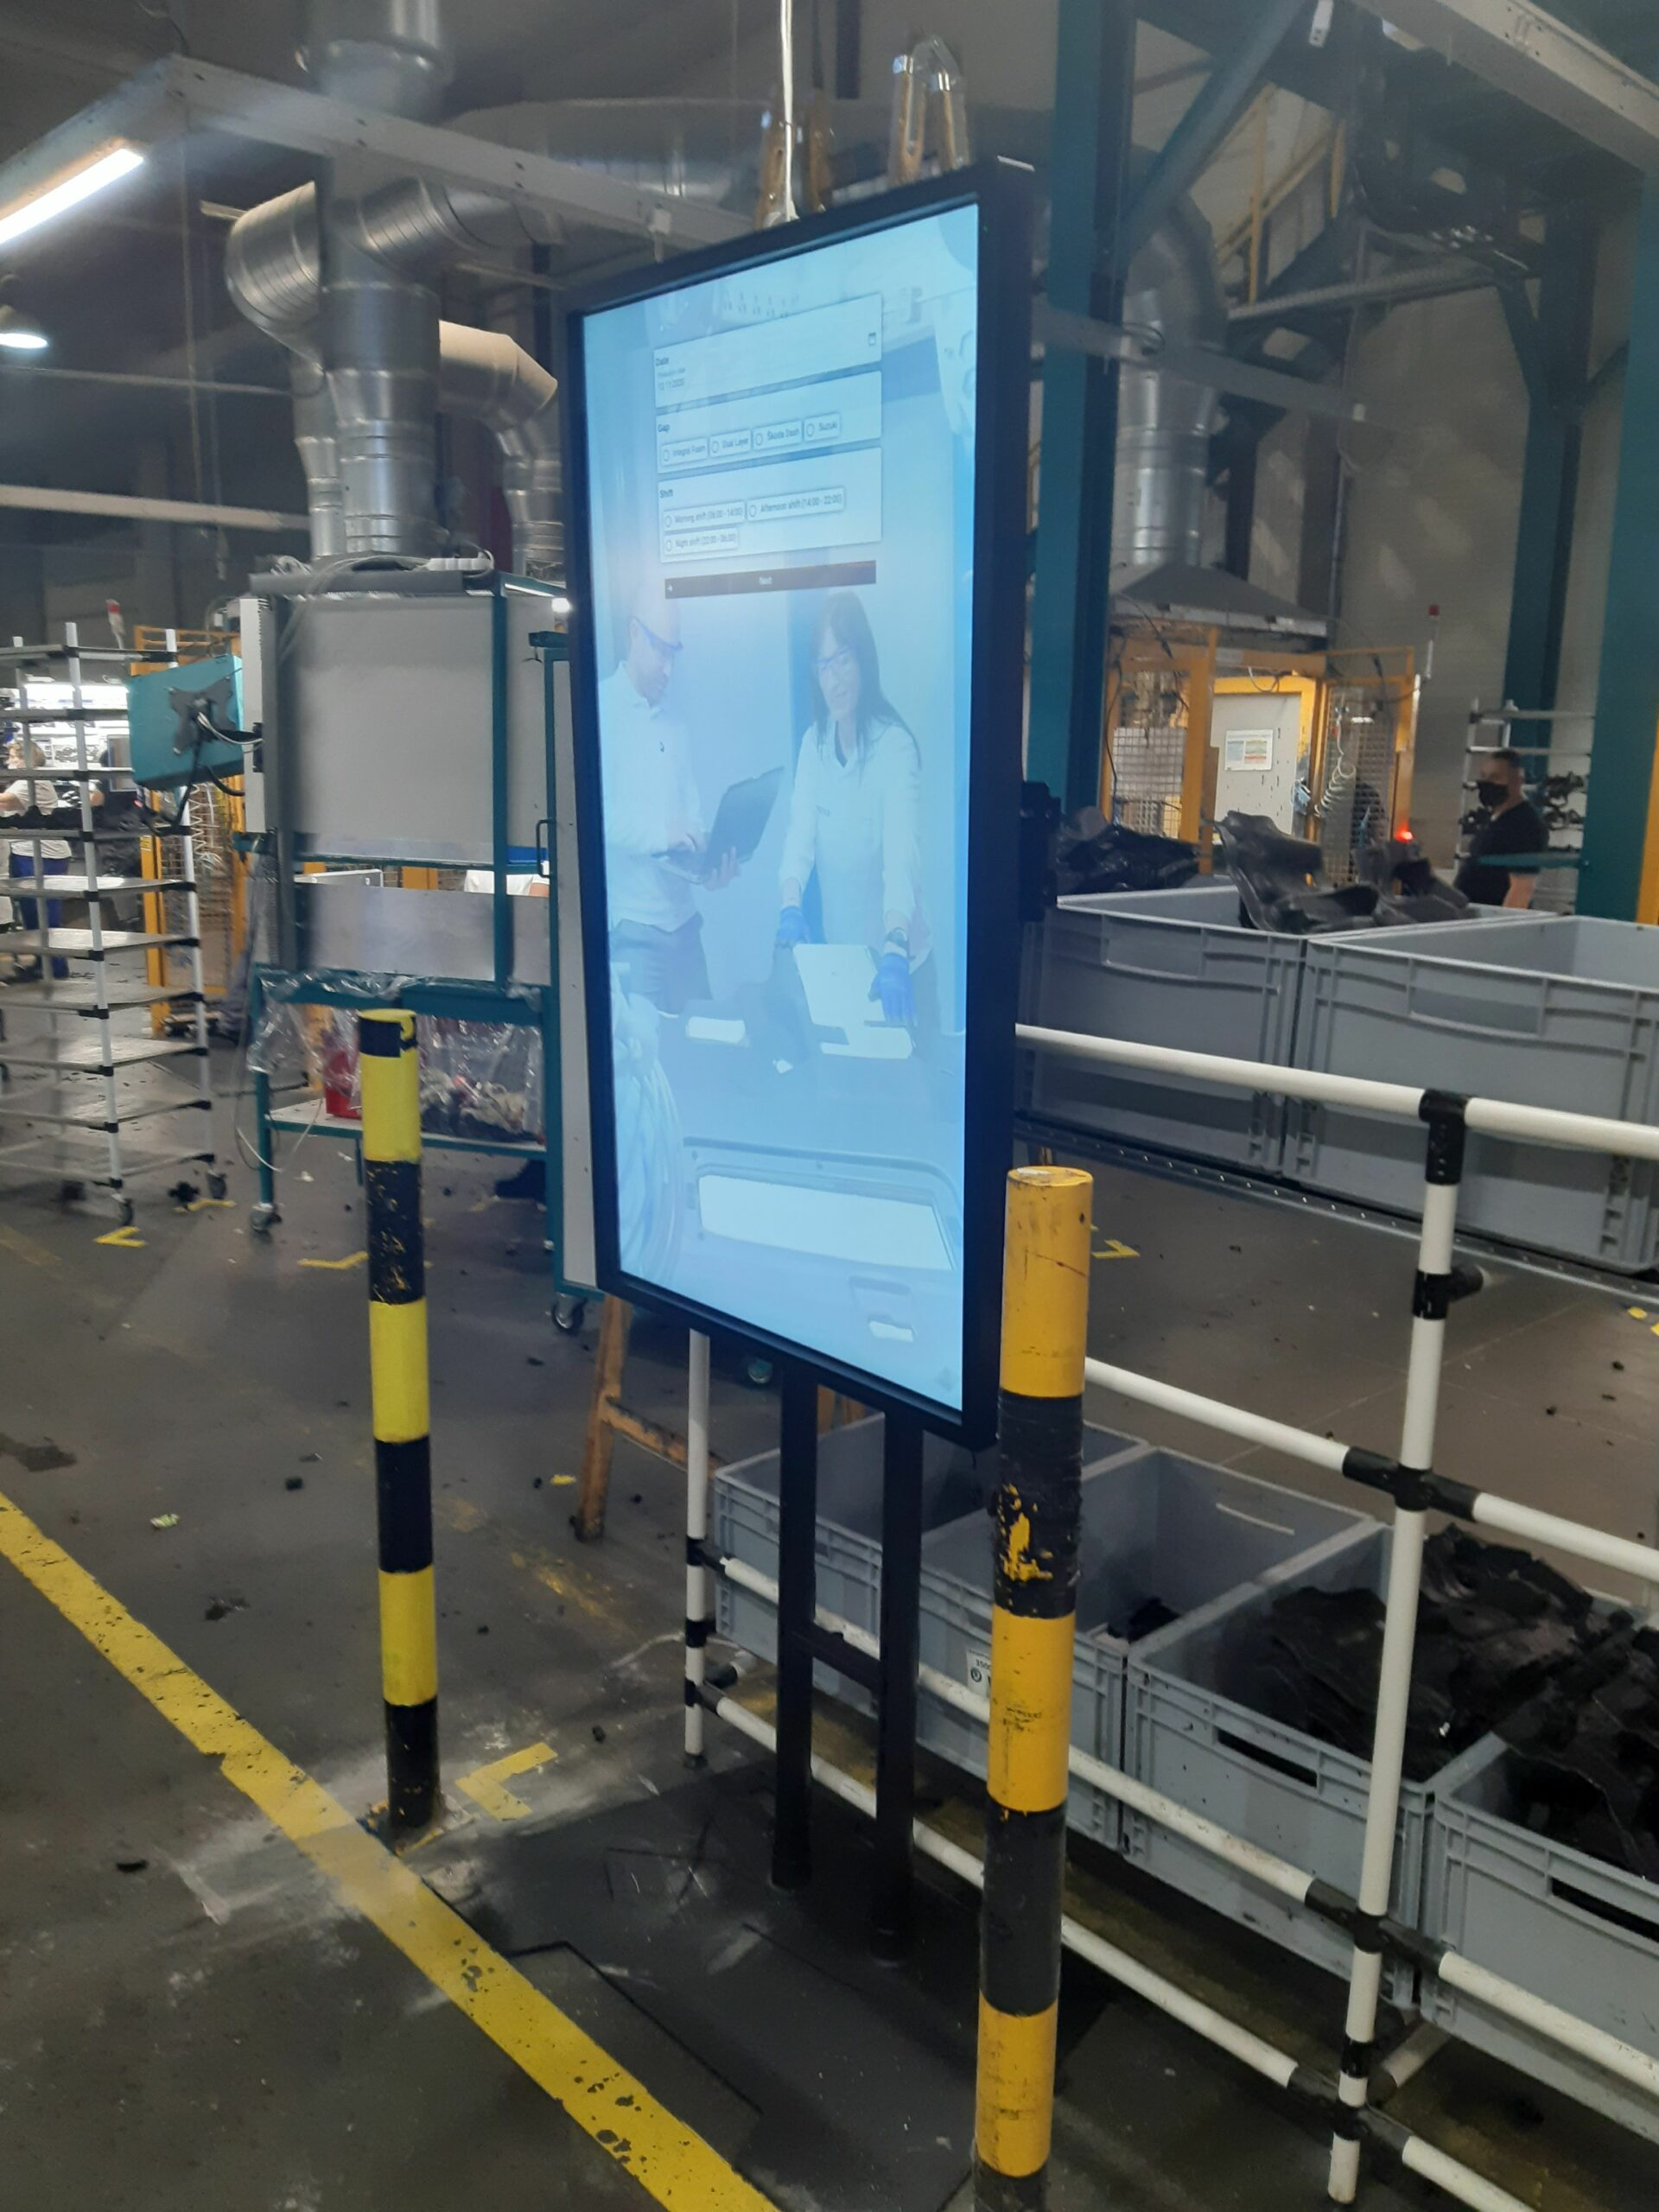 Production planning software for international automotive company